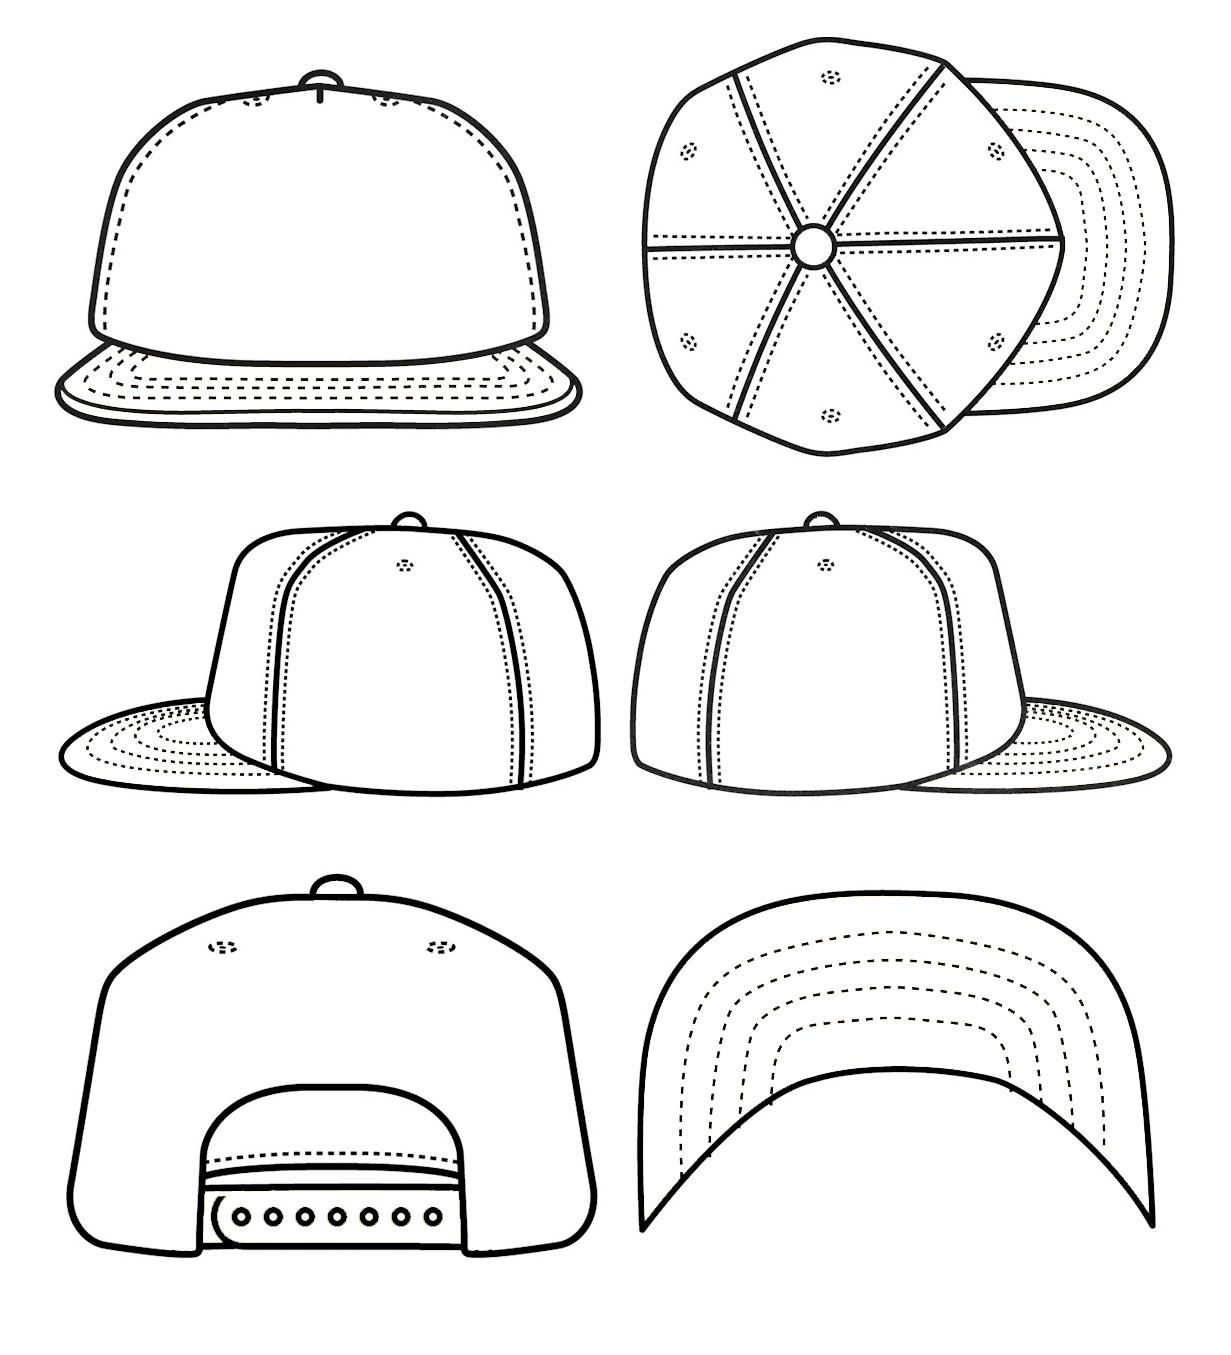 White snapback hat clipart picture library download Best Photos of Blank Snapback Stencil - Snapback Hat ... picture library download